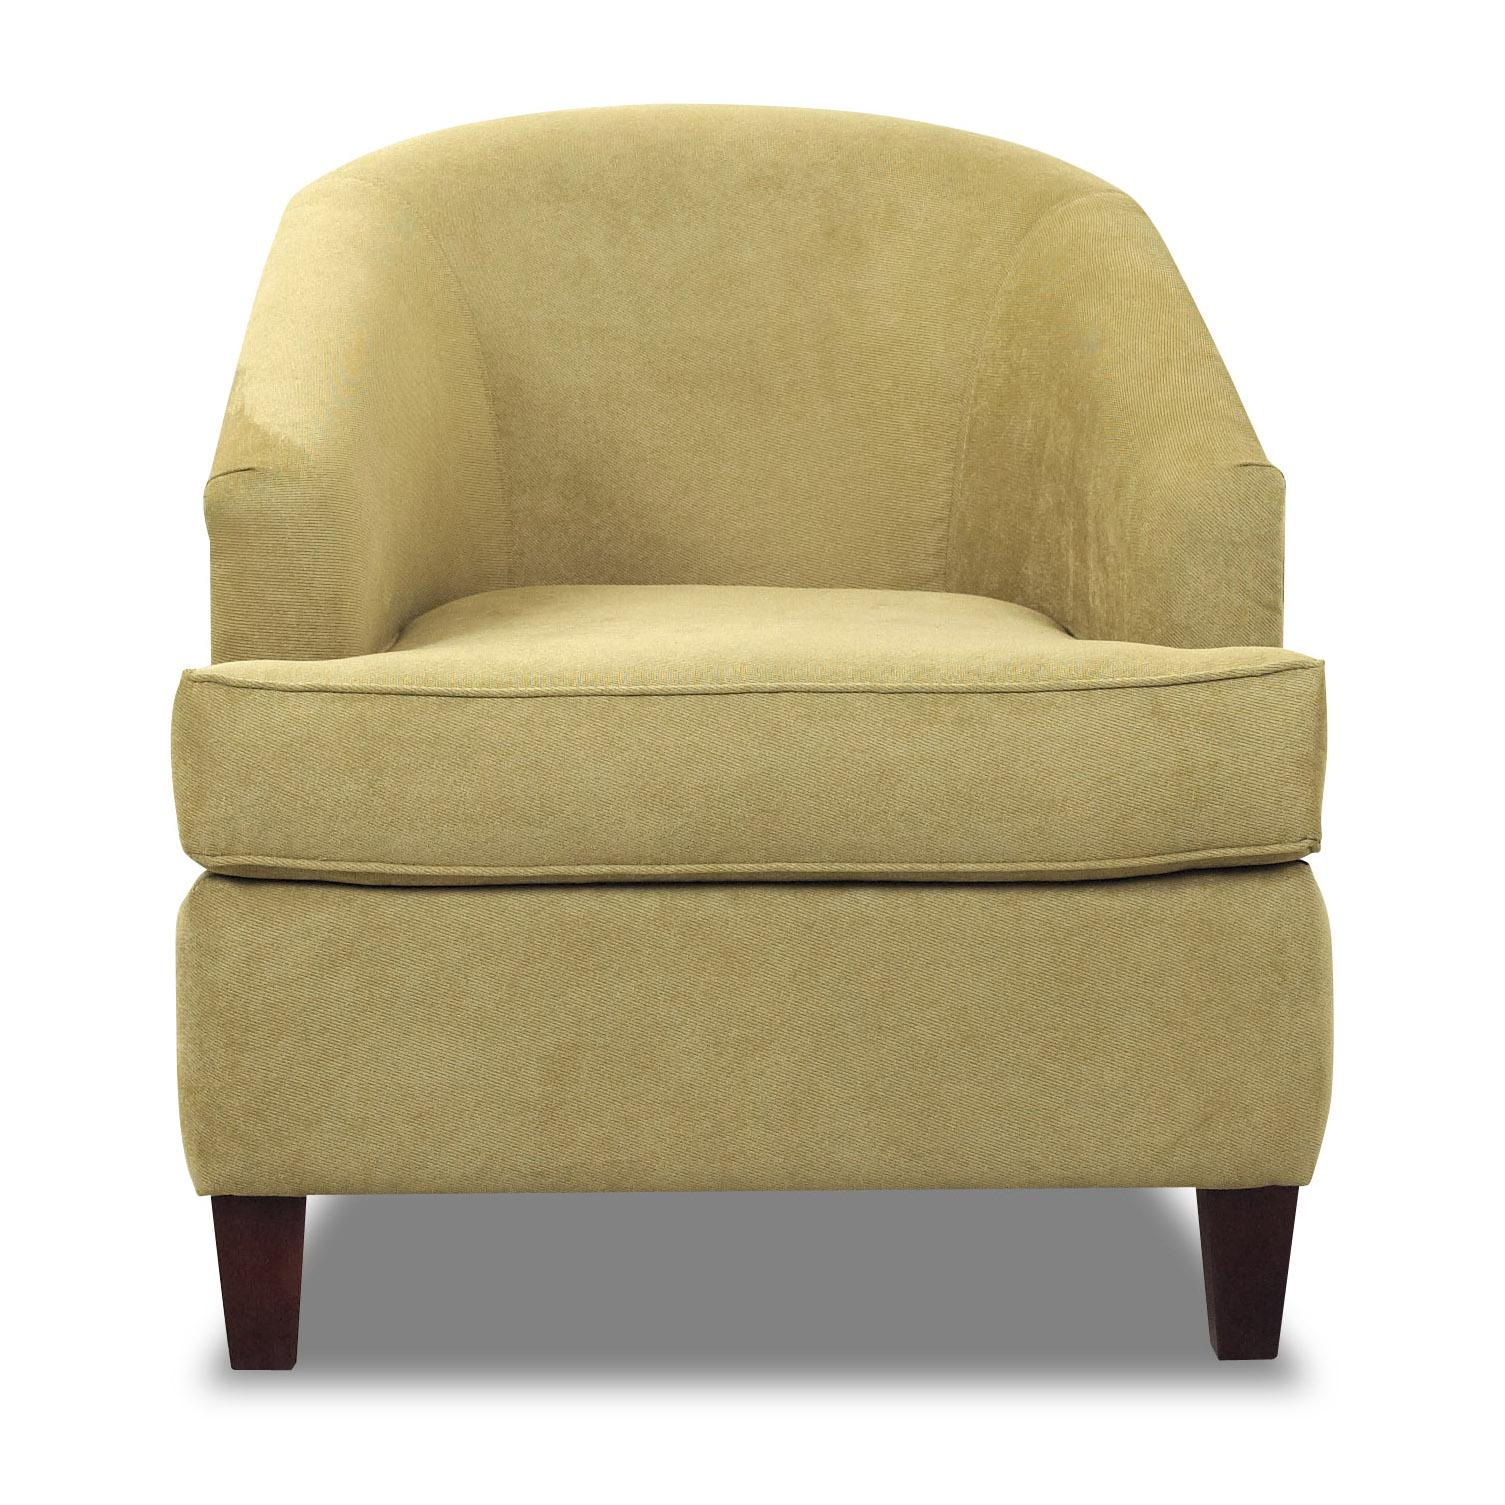 Klaussner Chairs And Accents K790 C Devon Accent Chair | Dunk Within Devon Ii Swivel Accent Chairs (View 19 of 25)